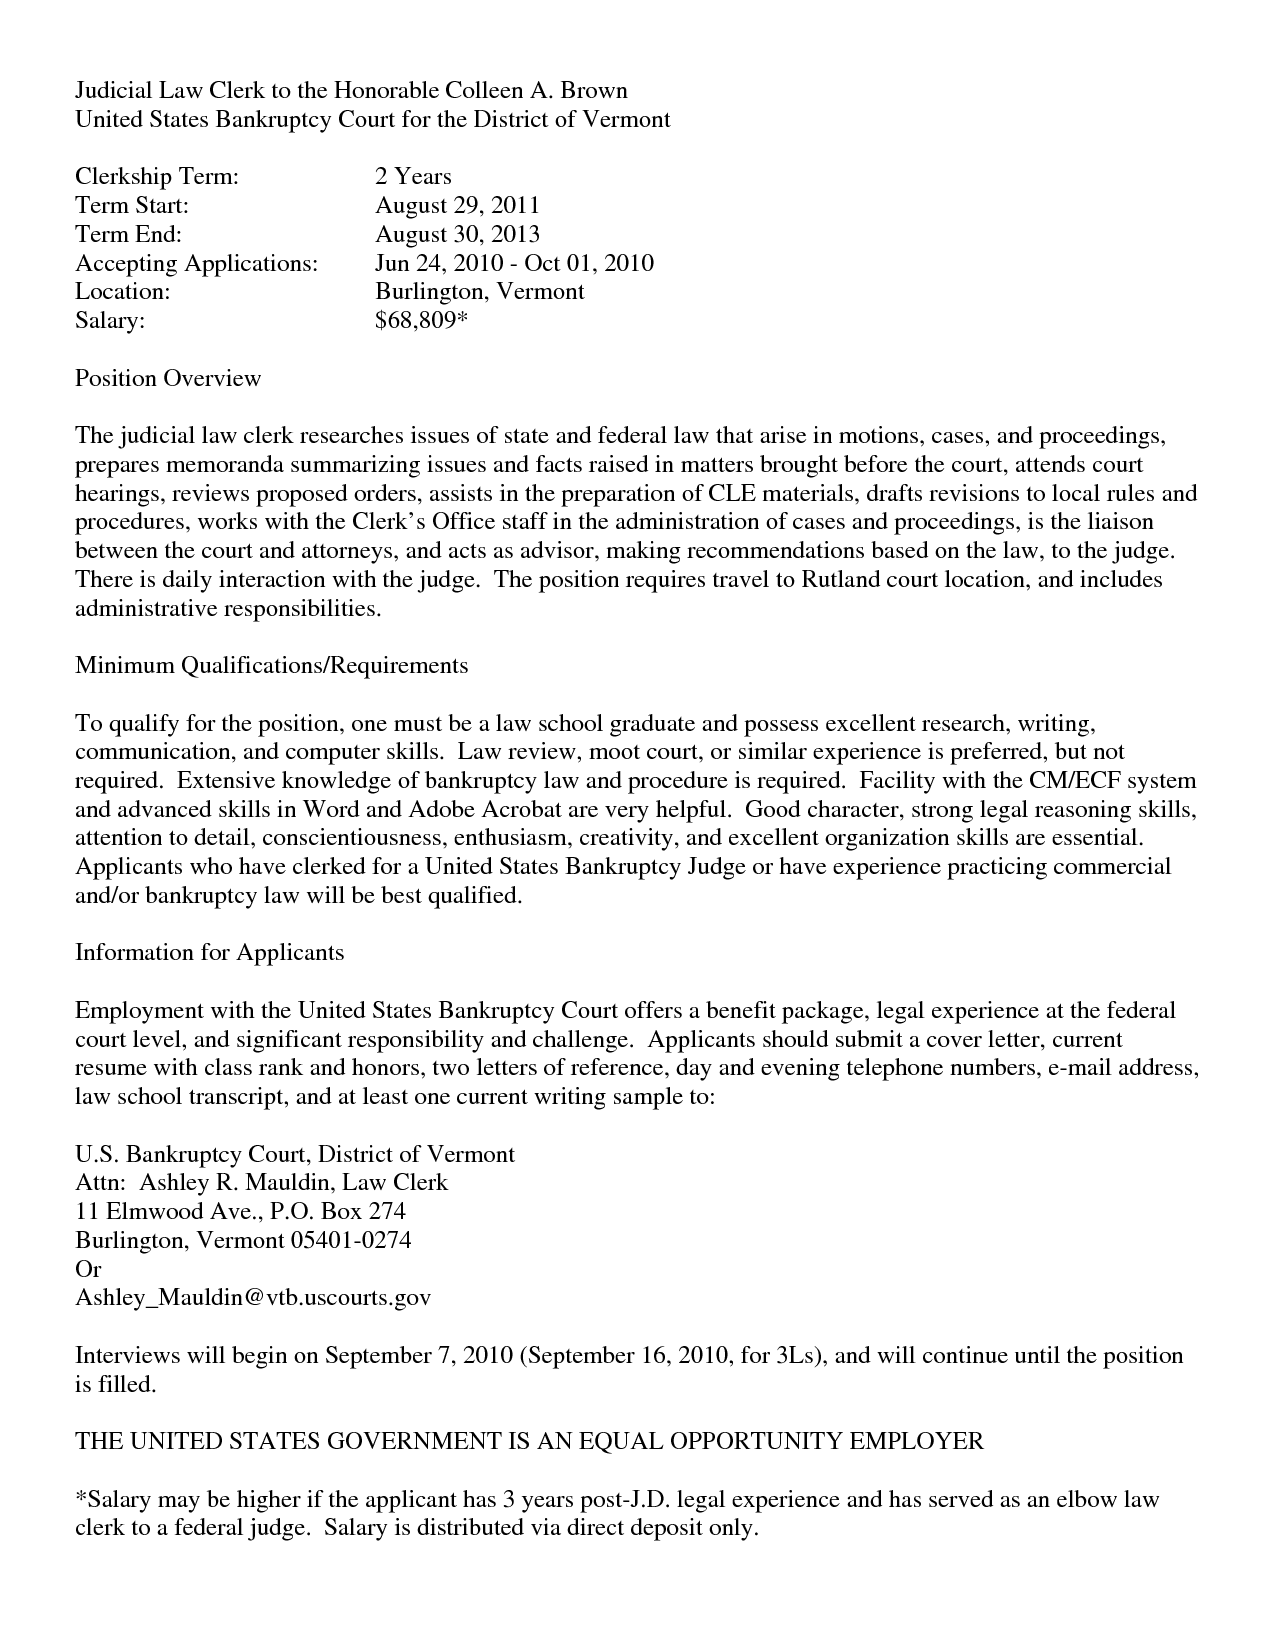 Recommendation Letter Sample For Job ApplicationReference Letter – Template for Reference Letter from Employer